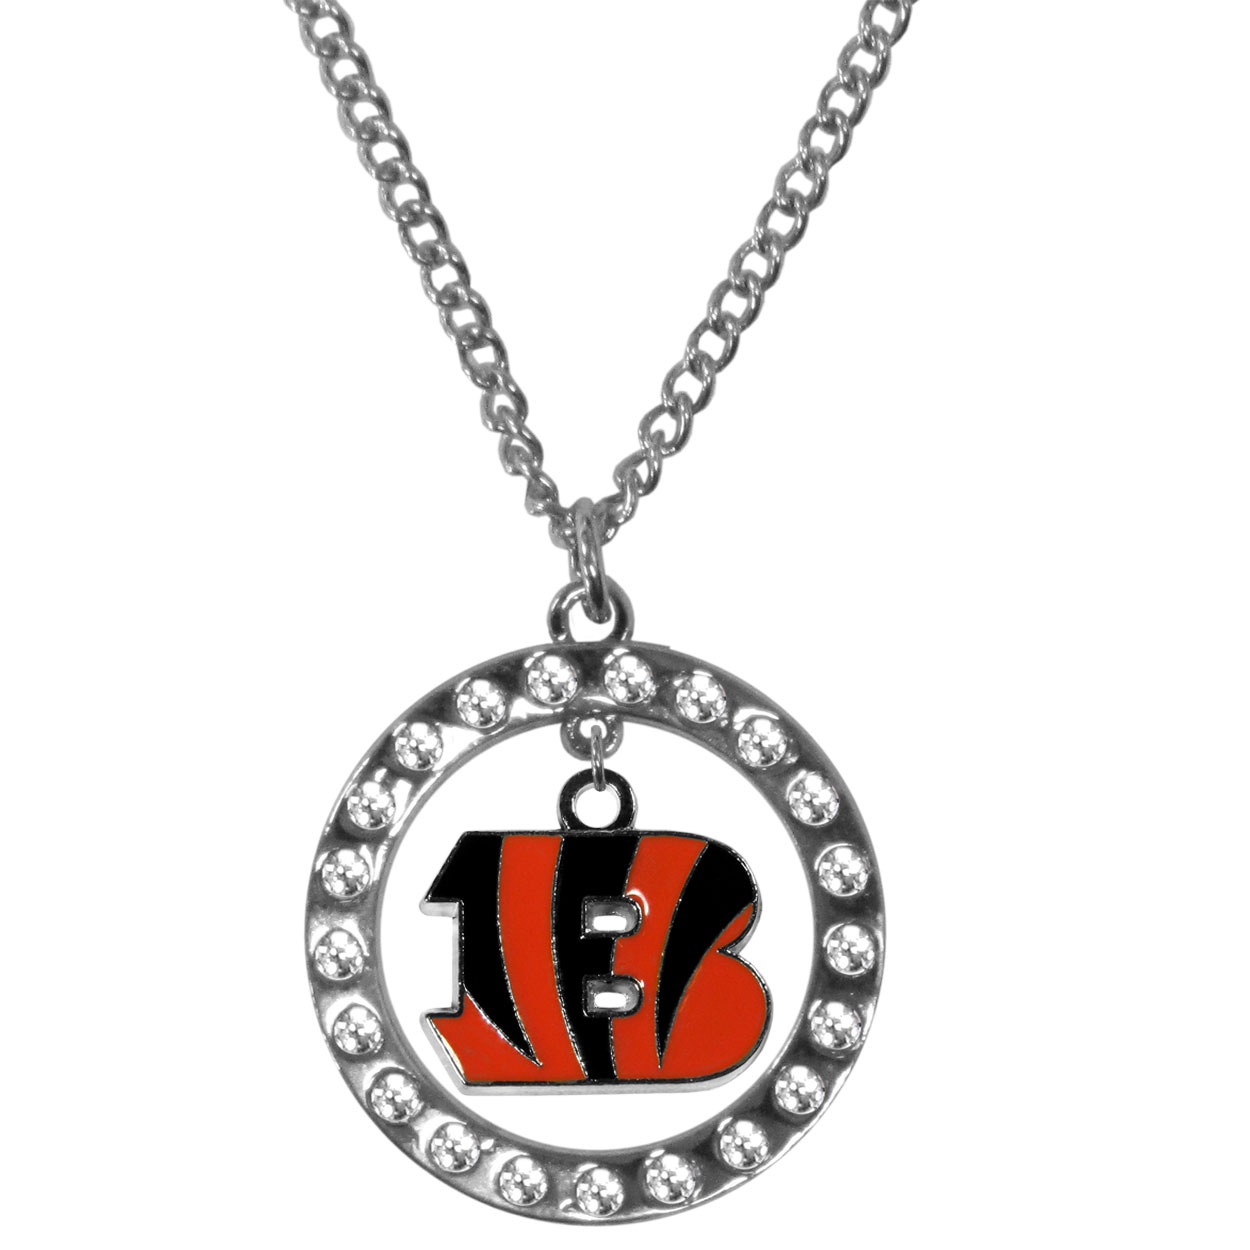 Cincinnati Bengals Rhinestone Hoop Necklaces - Our Cincinnati Bengals rhinestone hoop necklace comes on an 18 inch chain and features a hoop covered in rhinestones with a high polish chrome finish and a cast and enameled team charm dangling in the center.